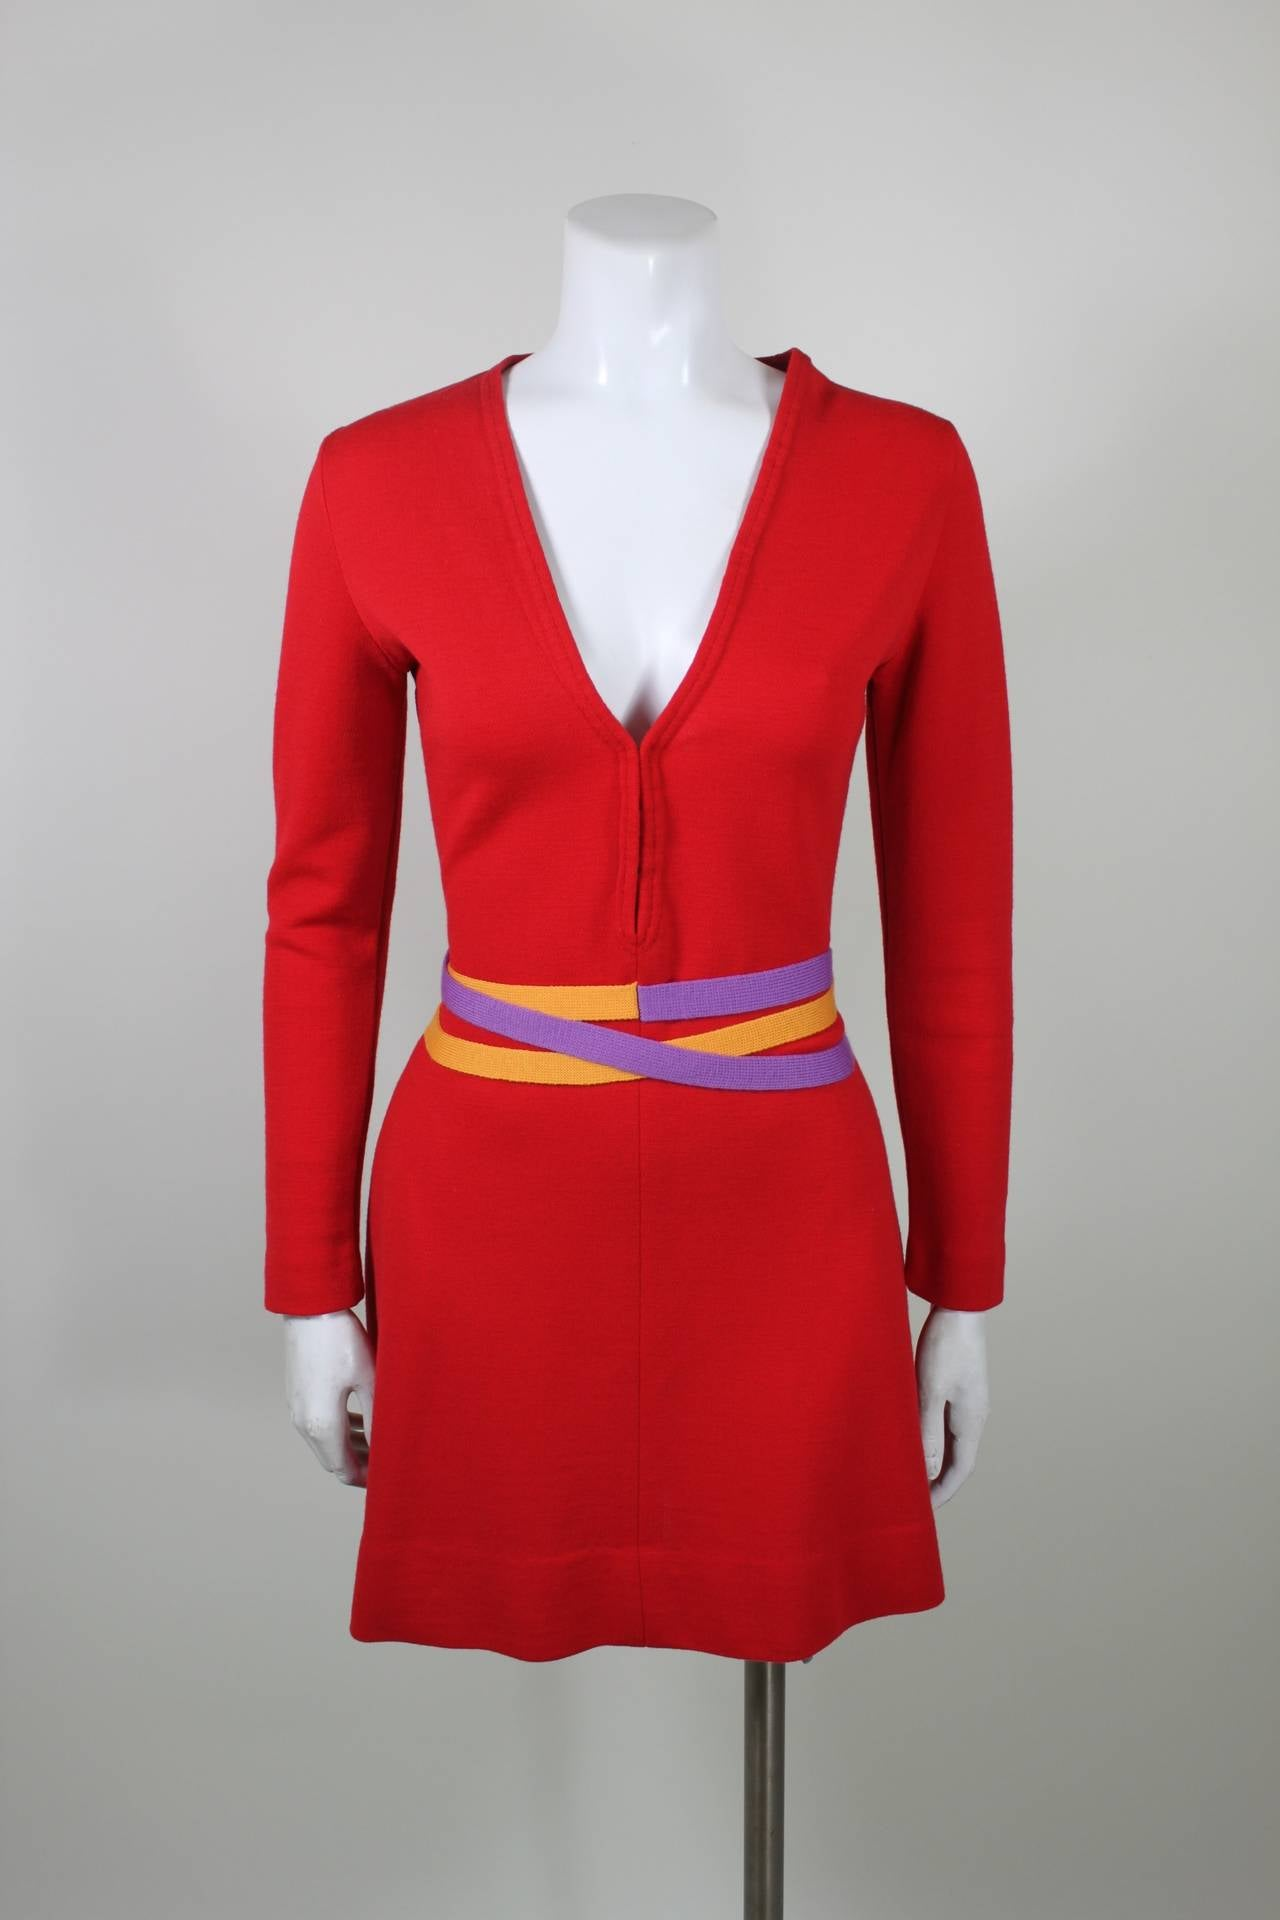 Rudi Gernreich 1960s Vibrant Red Wool Mini Dress with Purple and Yellow Belt 2